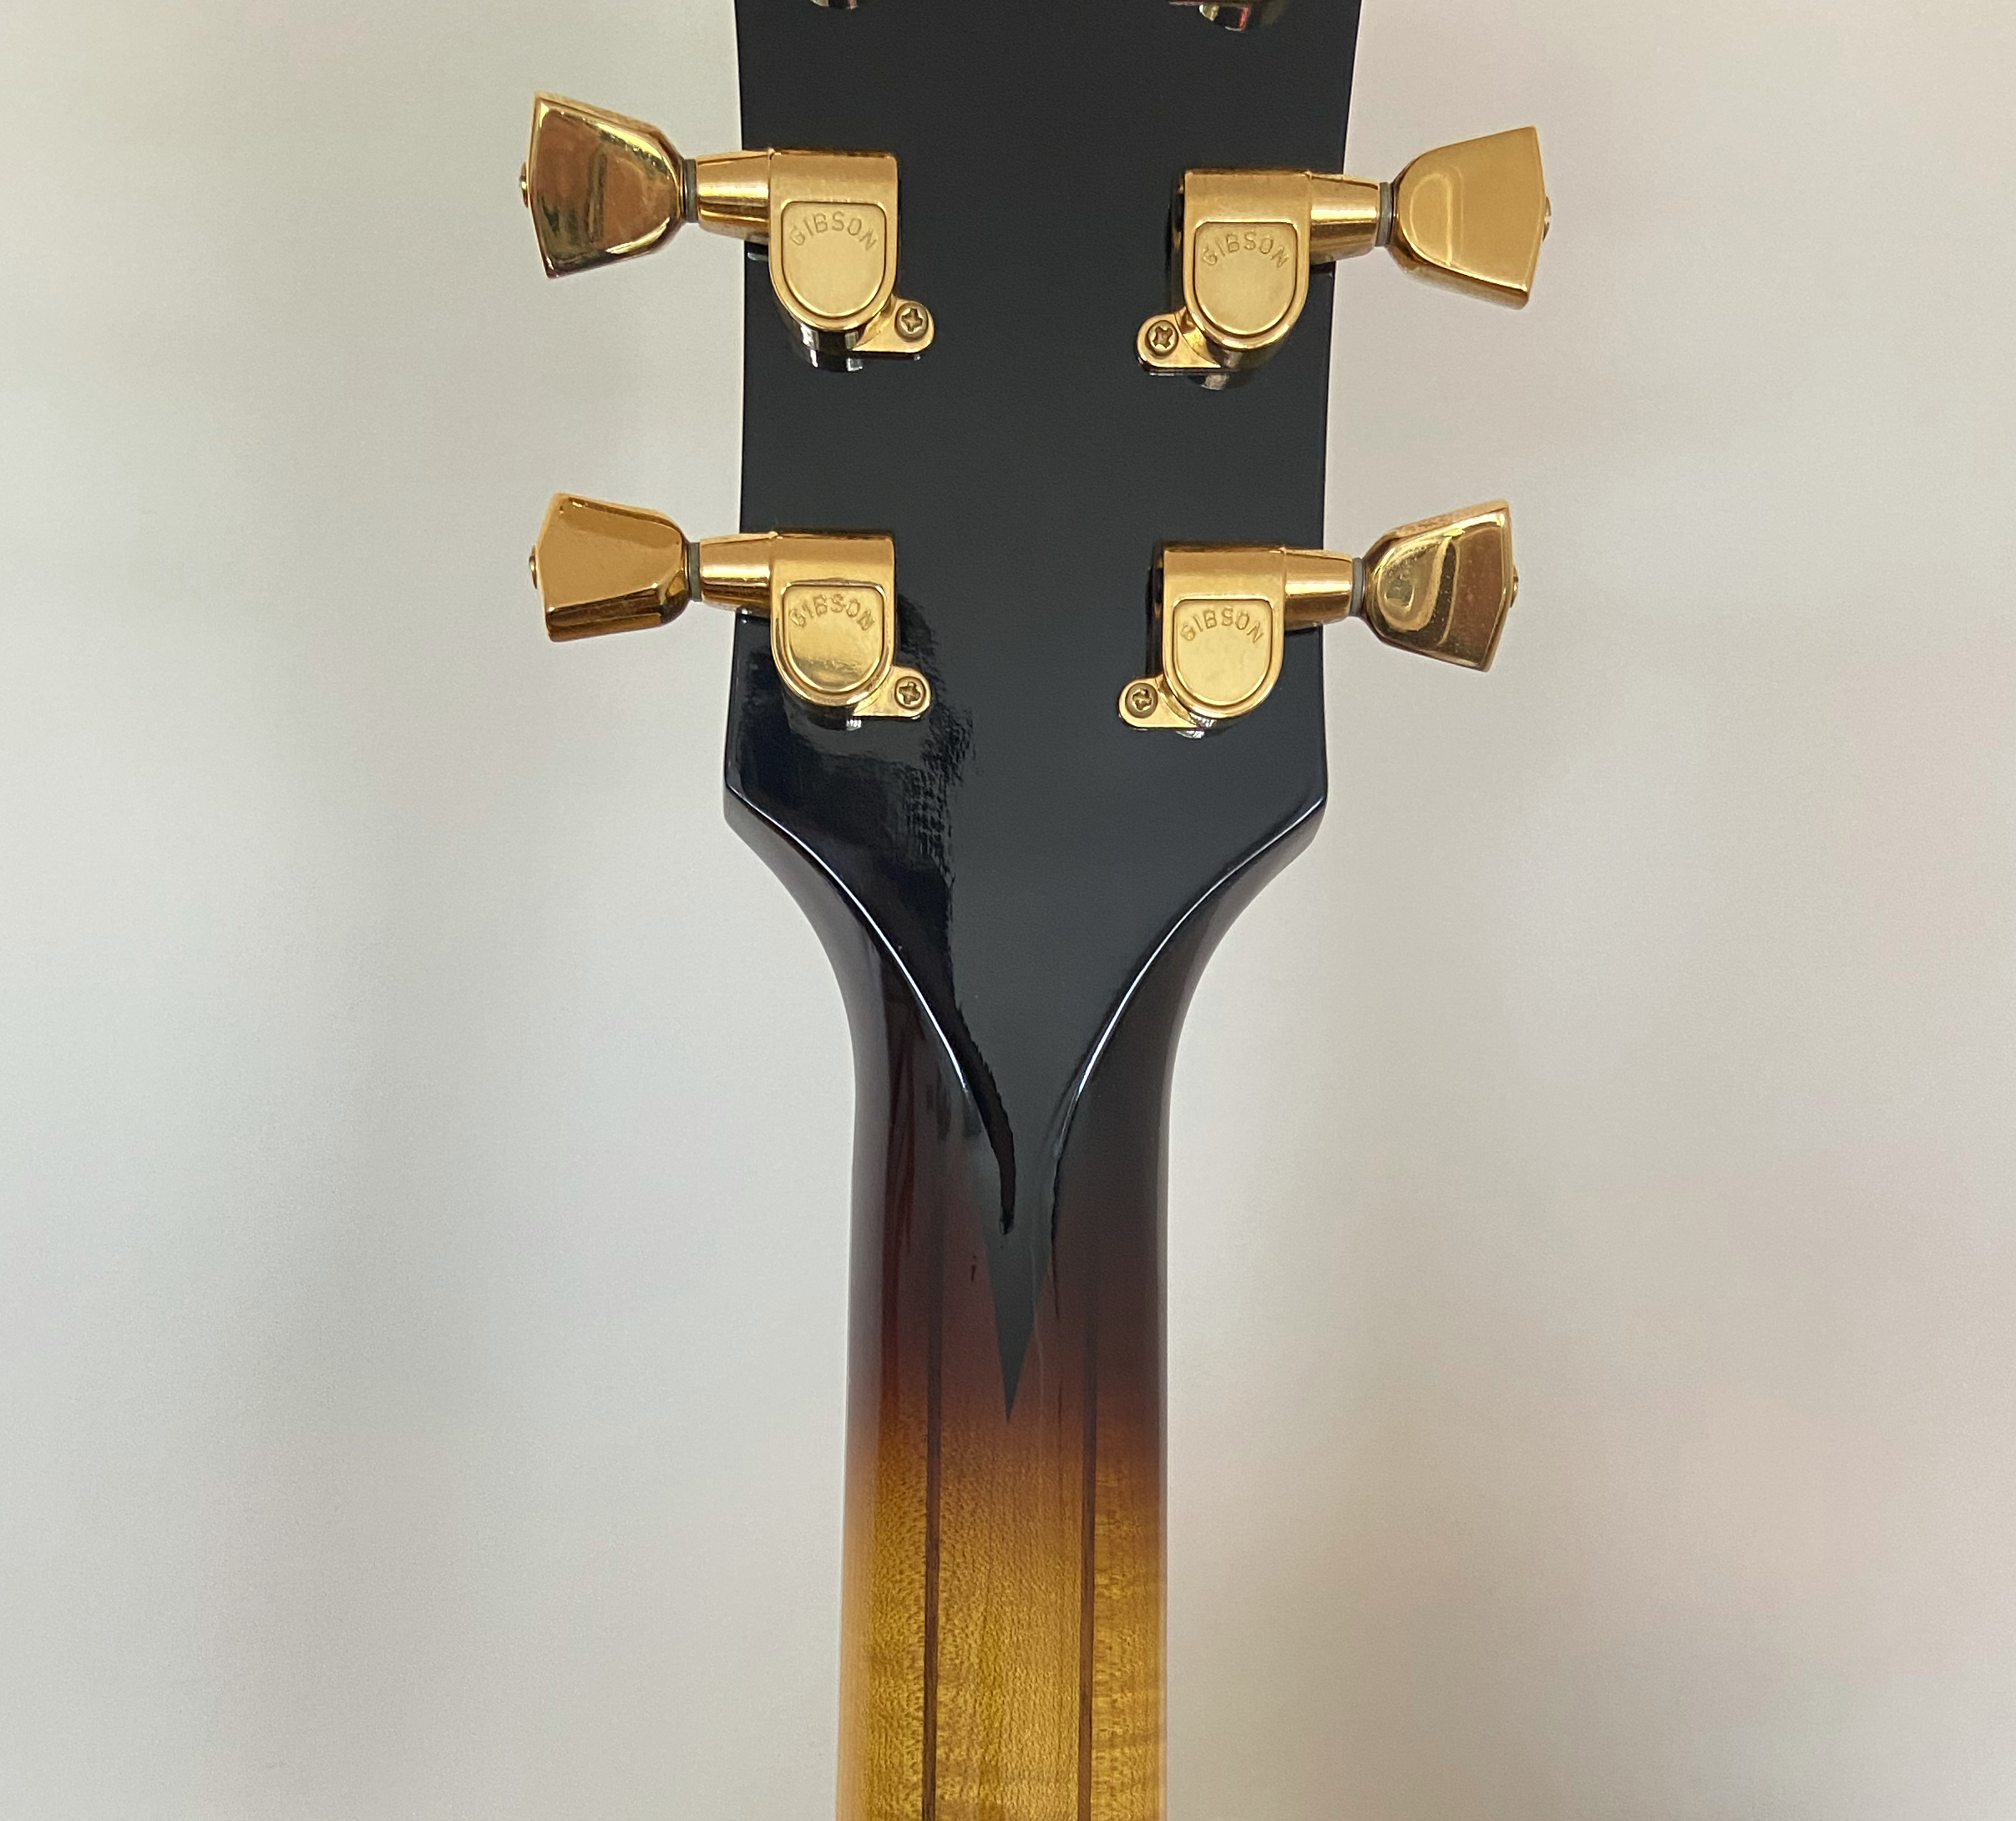 2002 Gibson L-5 - Catch or Release?-l5-stinger-jpg